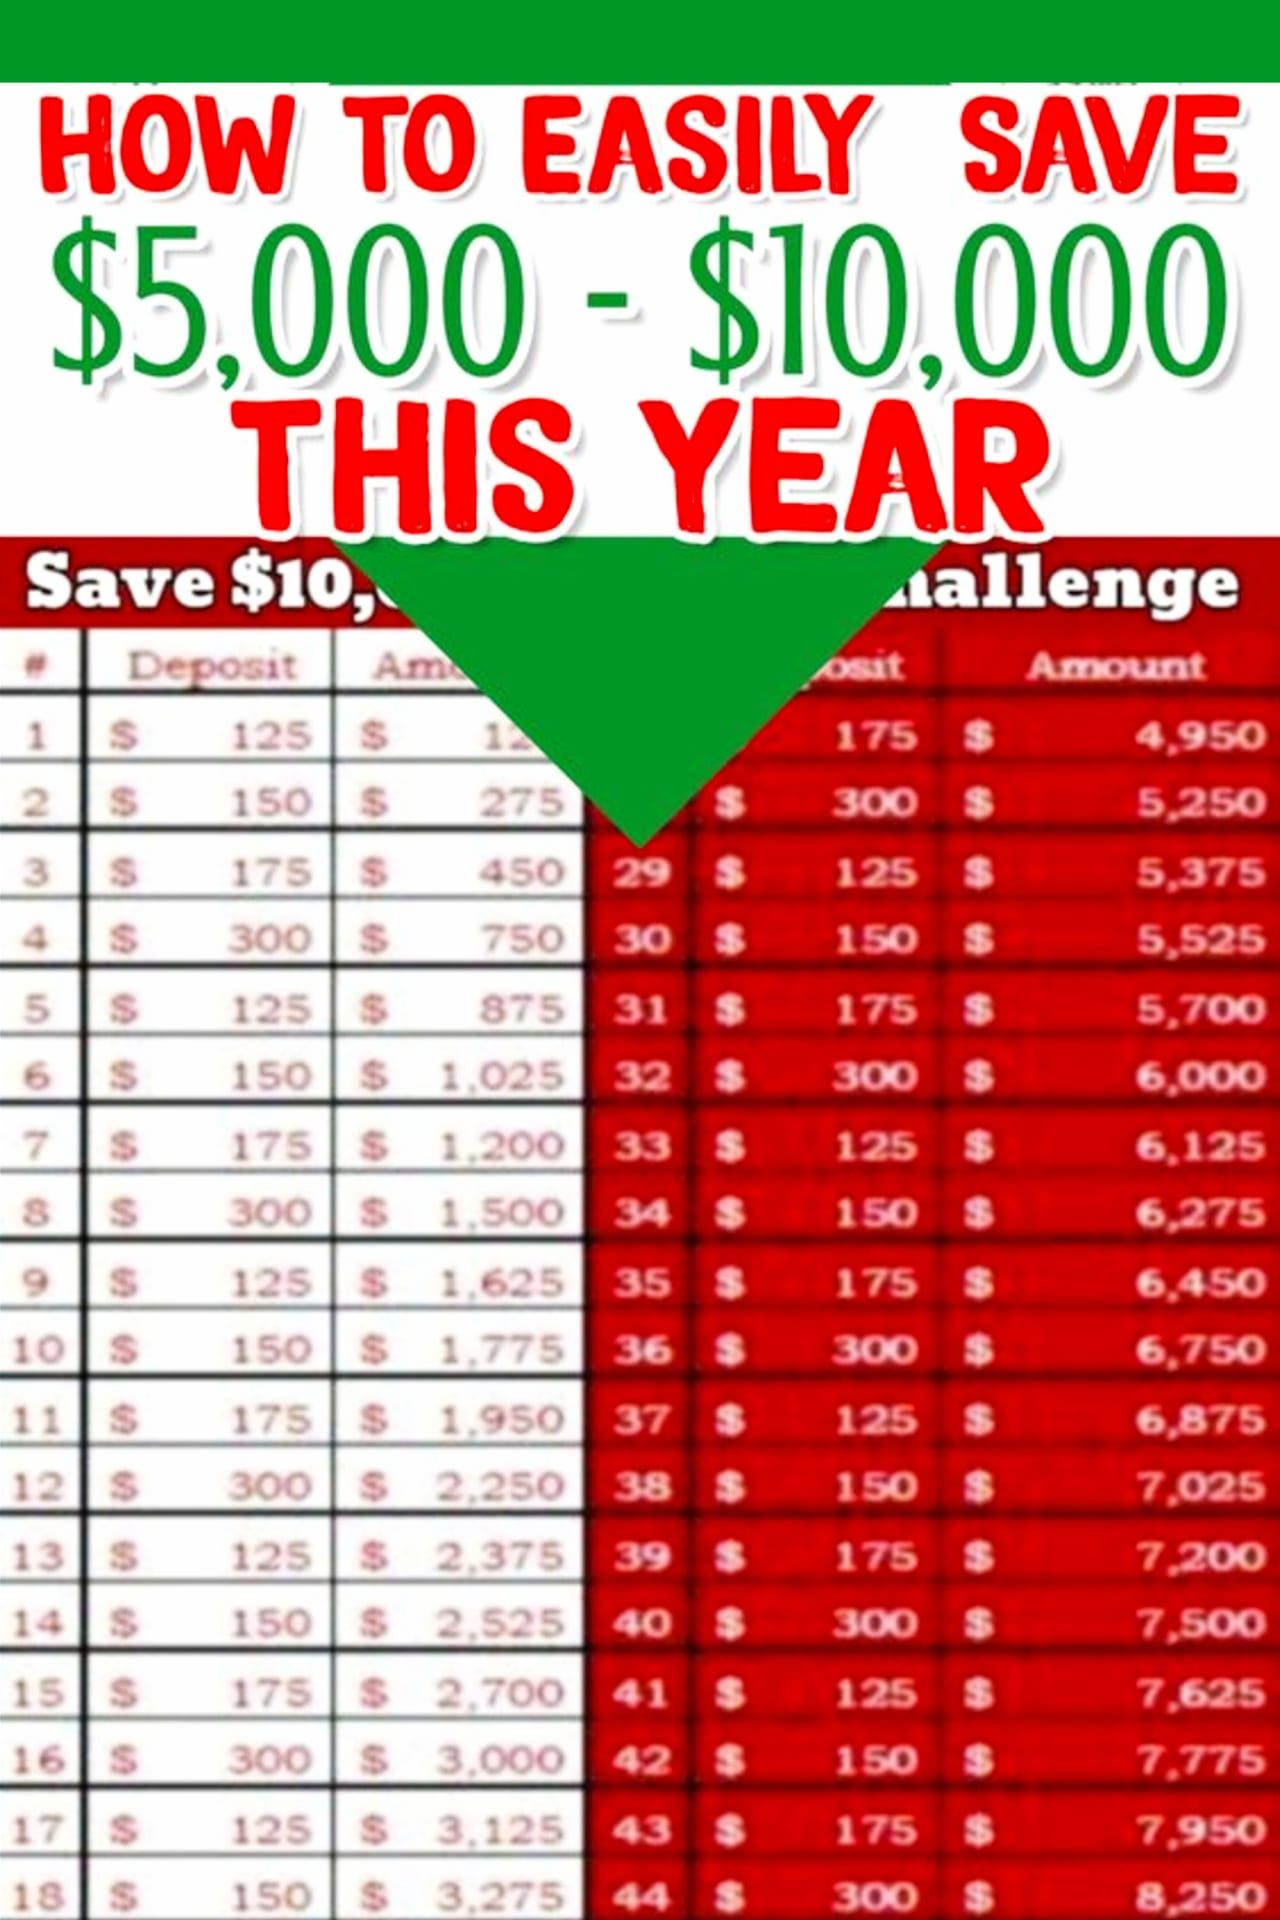 Save Money Challenges - Money Challenges Ideas - how to save $5000 to $10000 this year